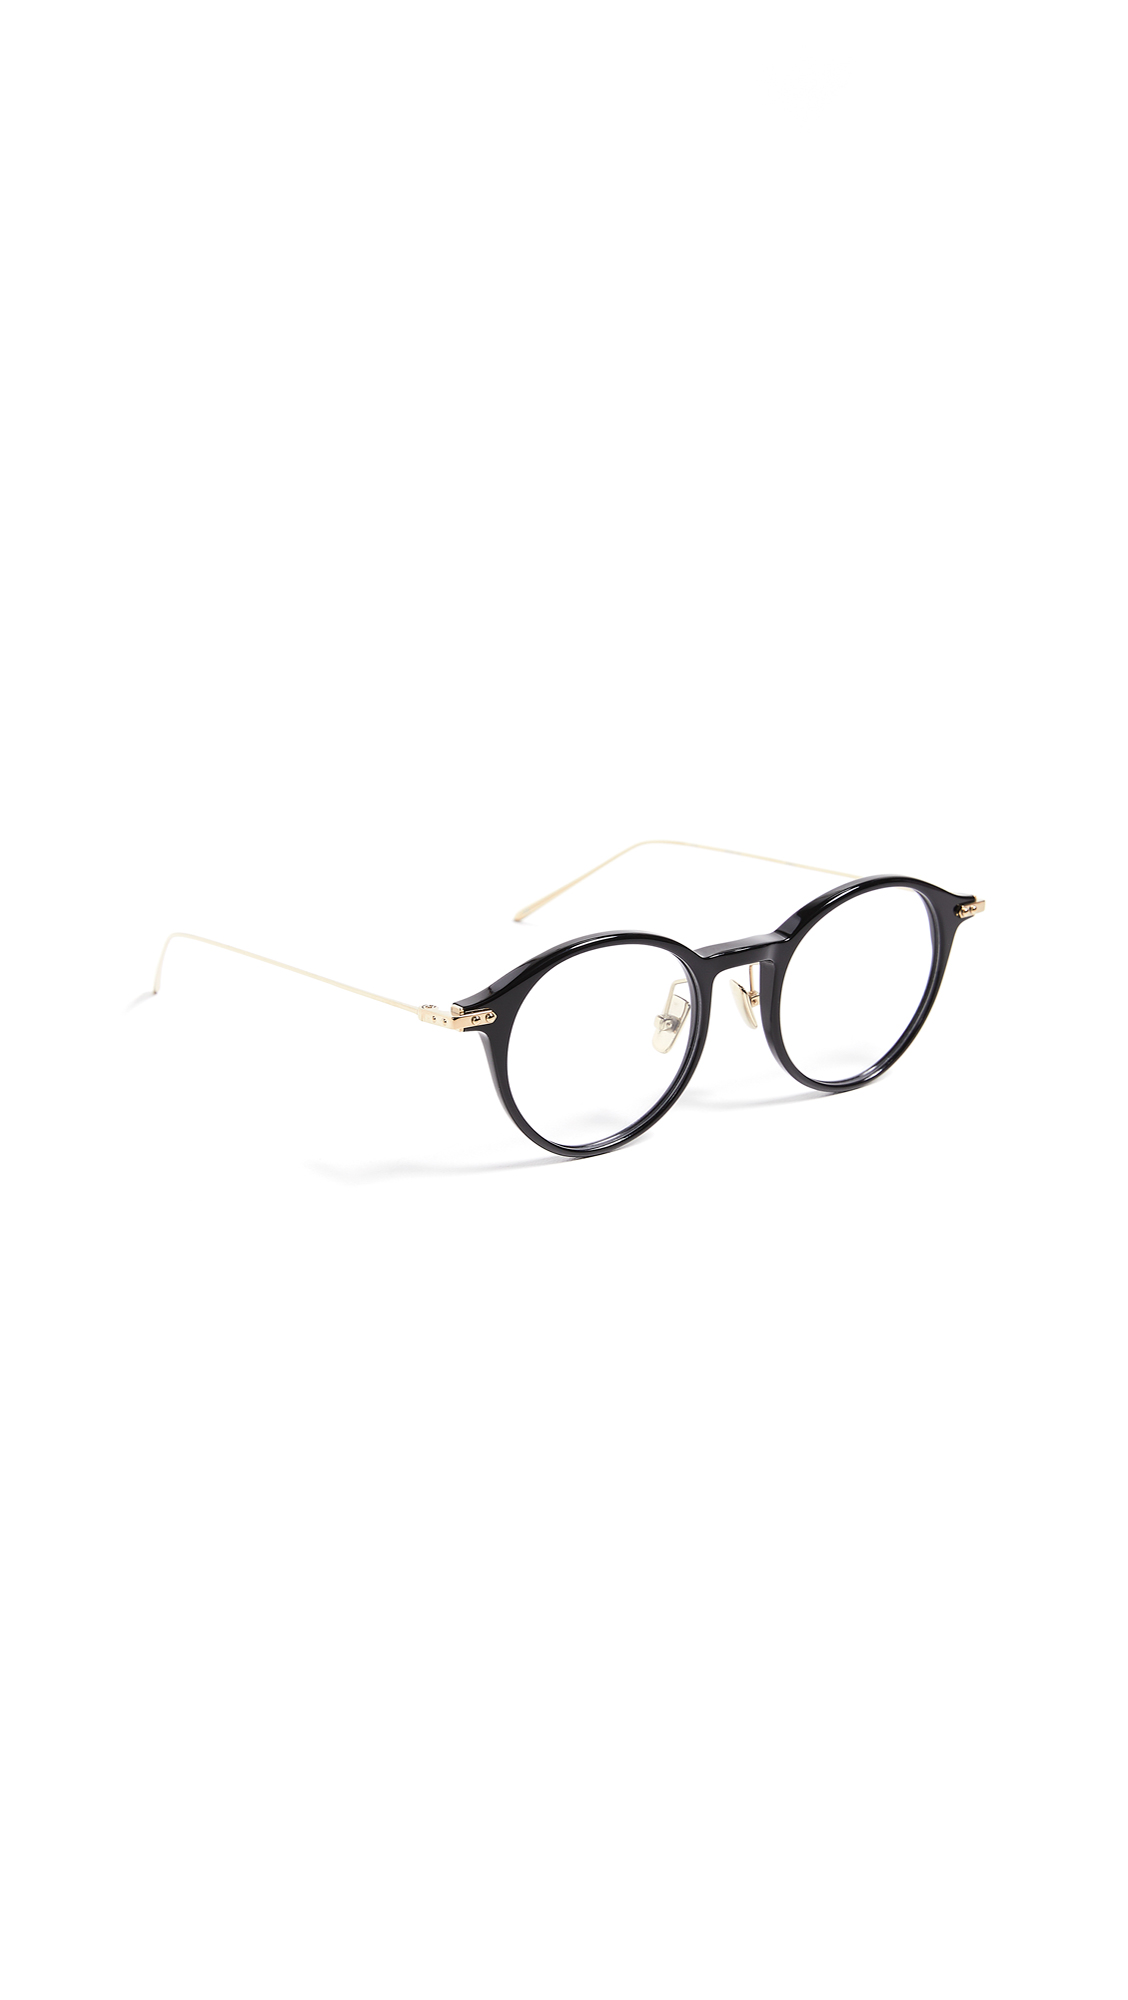 LINDA FARROW LUXE Linear Optical Round Glasses in Black/Light Gold/Optical